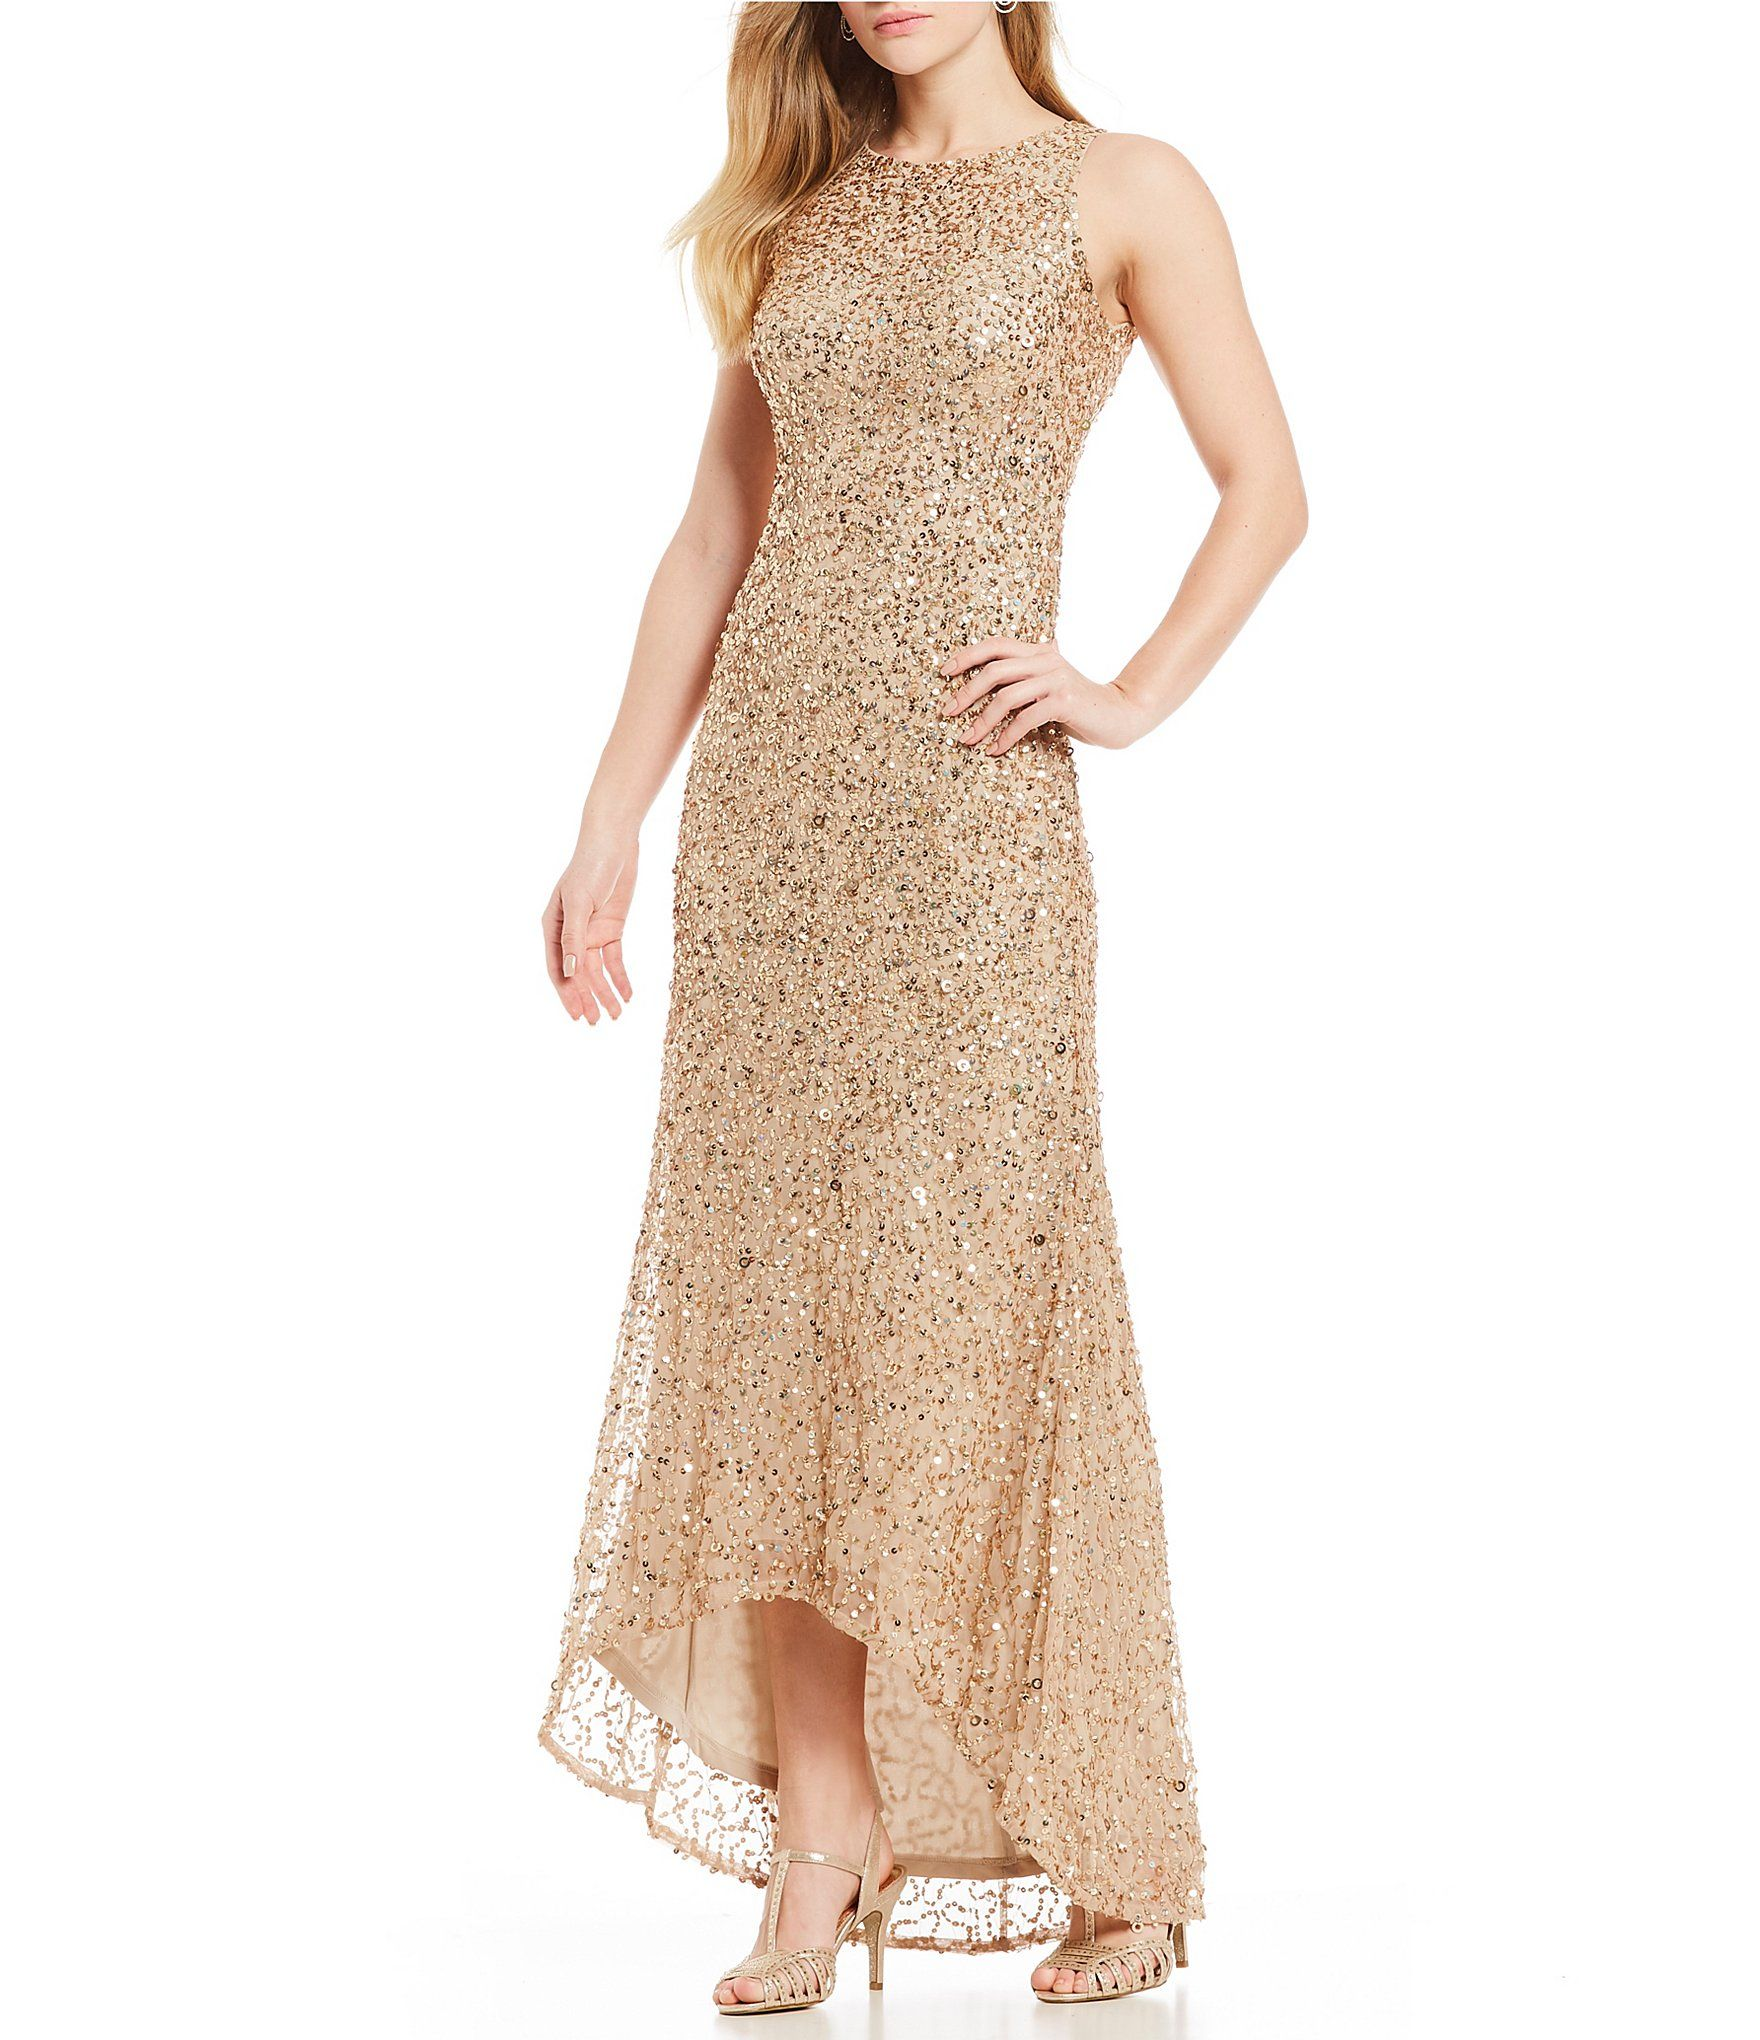 e5fbf70a3df Shop for Adrianna Papell Petite Size Hi-Low Beaded Gown at Dillards.com.  Visit Dillards.com to find clothing